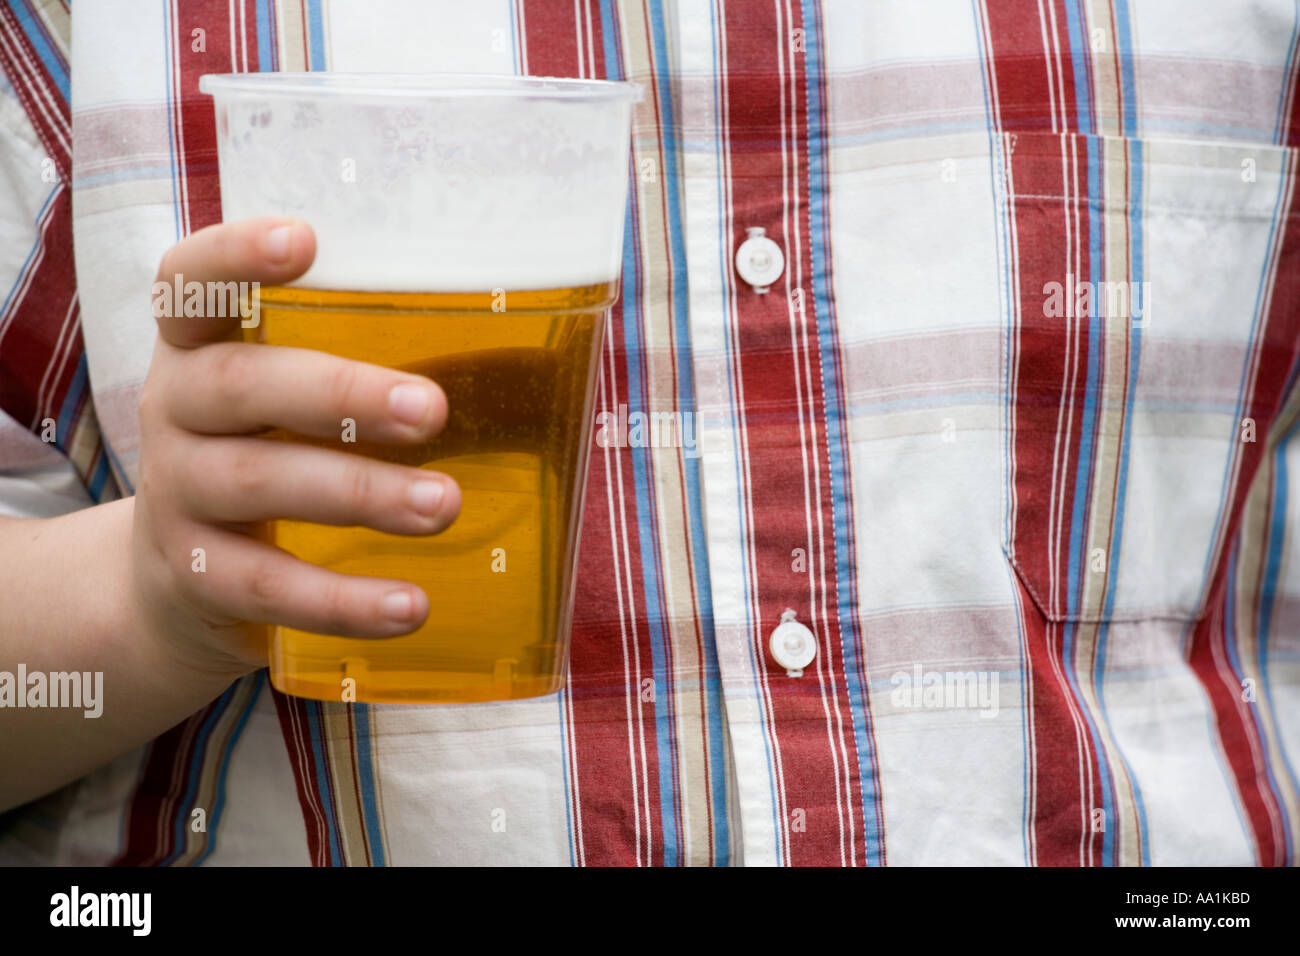 YOUNG BOY HOLDING A PINT OF BEER - Stock Image